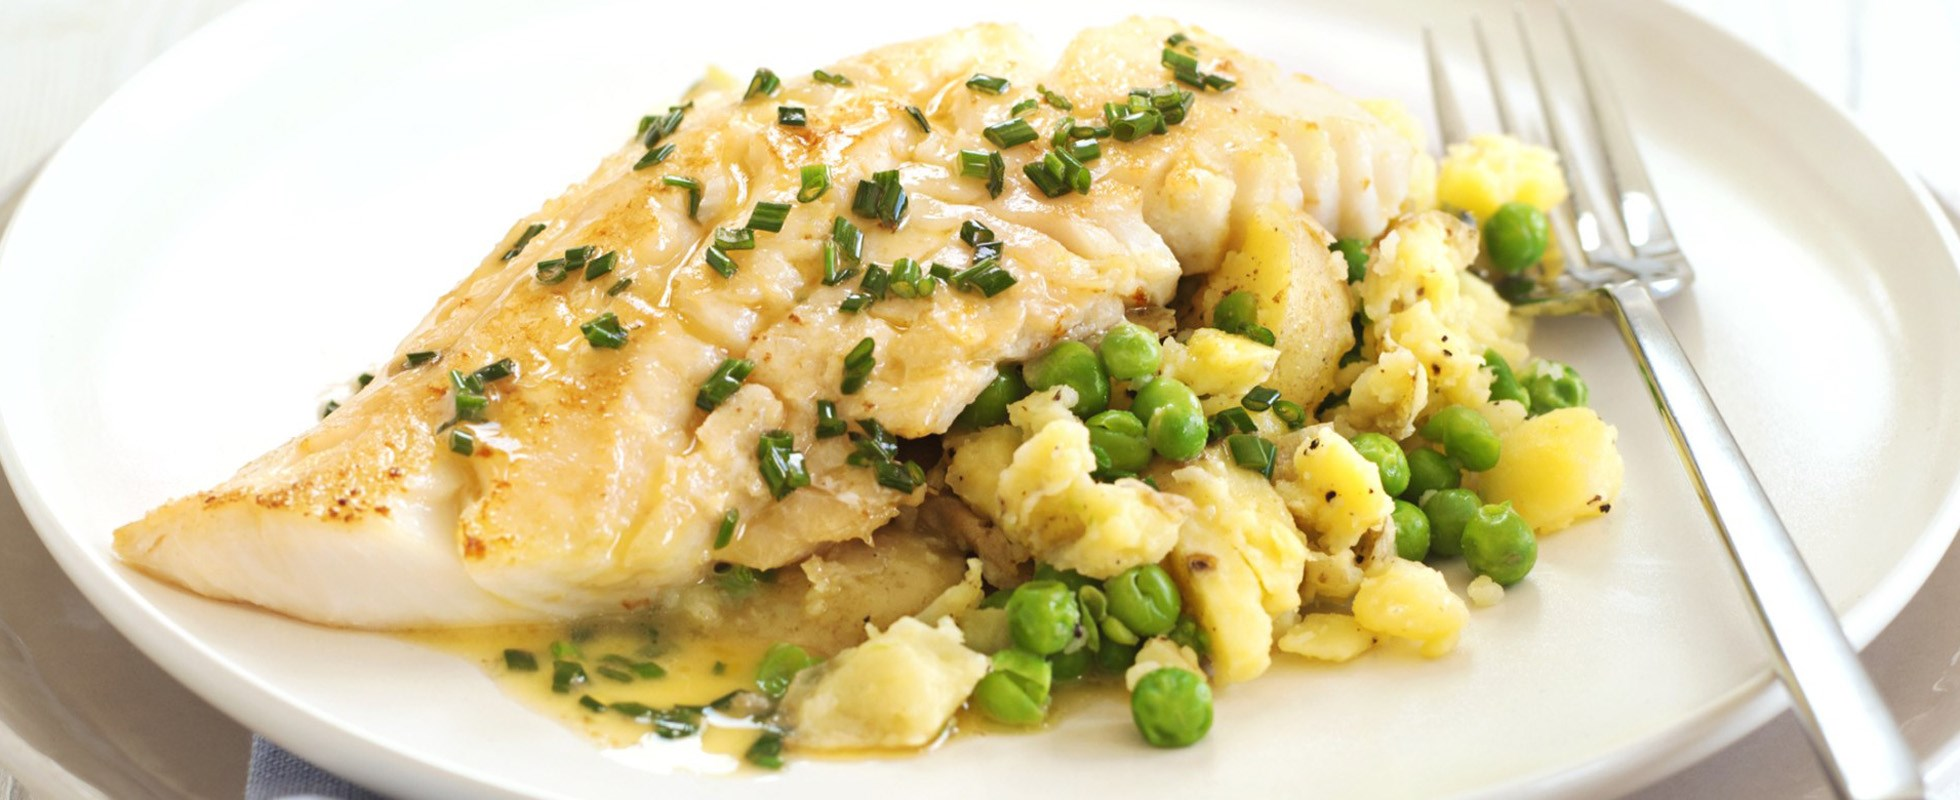 Smoked haddock with chive